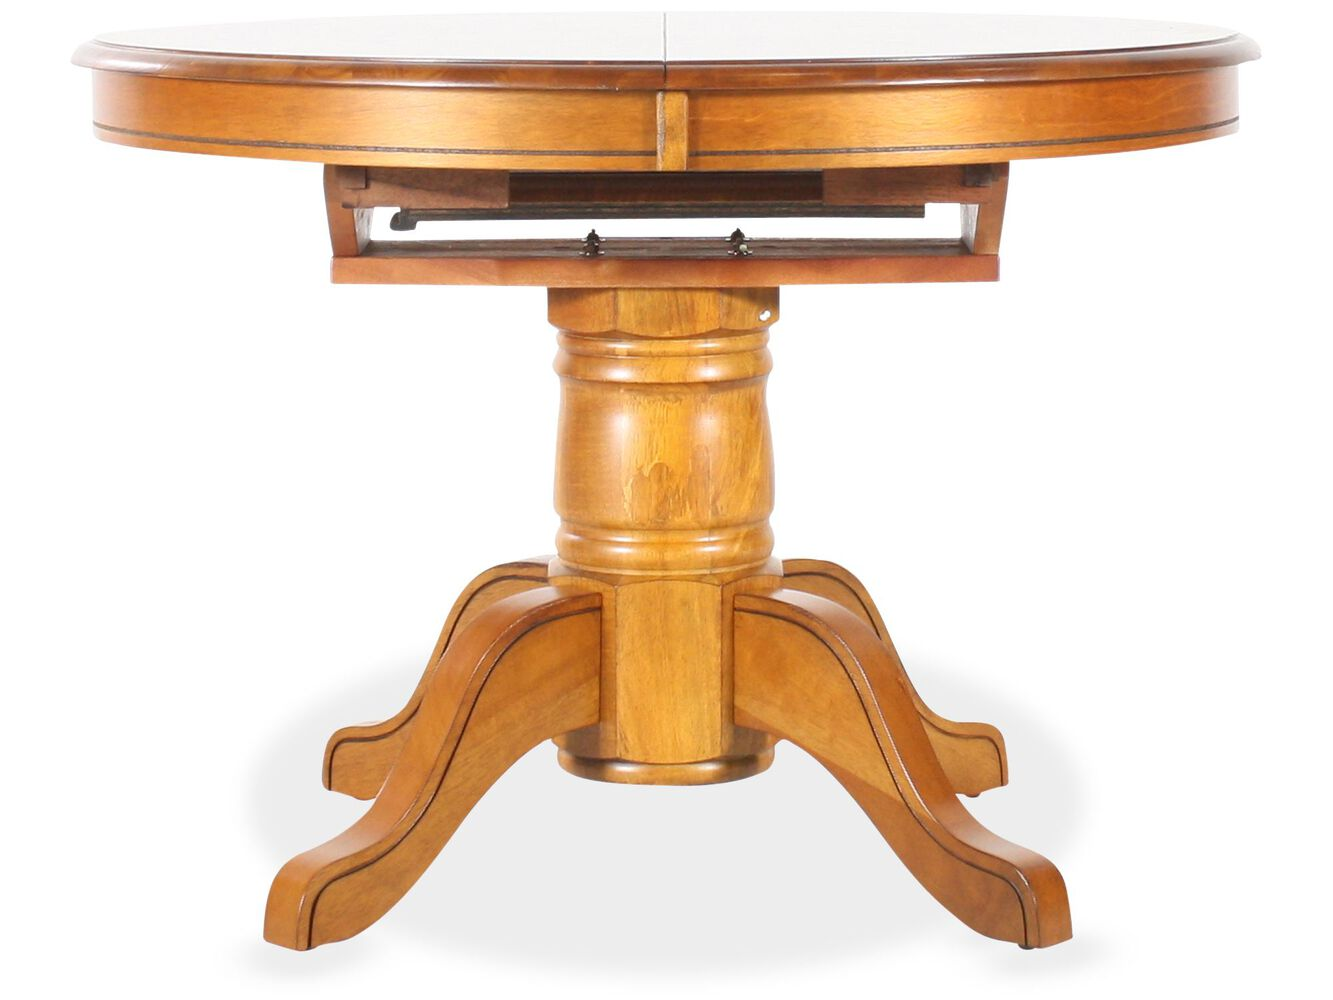 dv table of maestro Derating table 2 250 volume 1 p/n 367-1746 rev c wwwlutroncom/specificationguide maestro wireless (light/fan) 8 a/58 a 65 a/5 8 a 5 a/44 a.